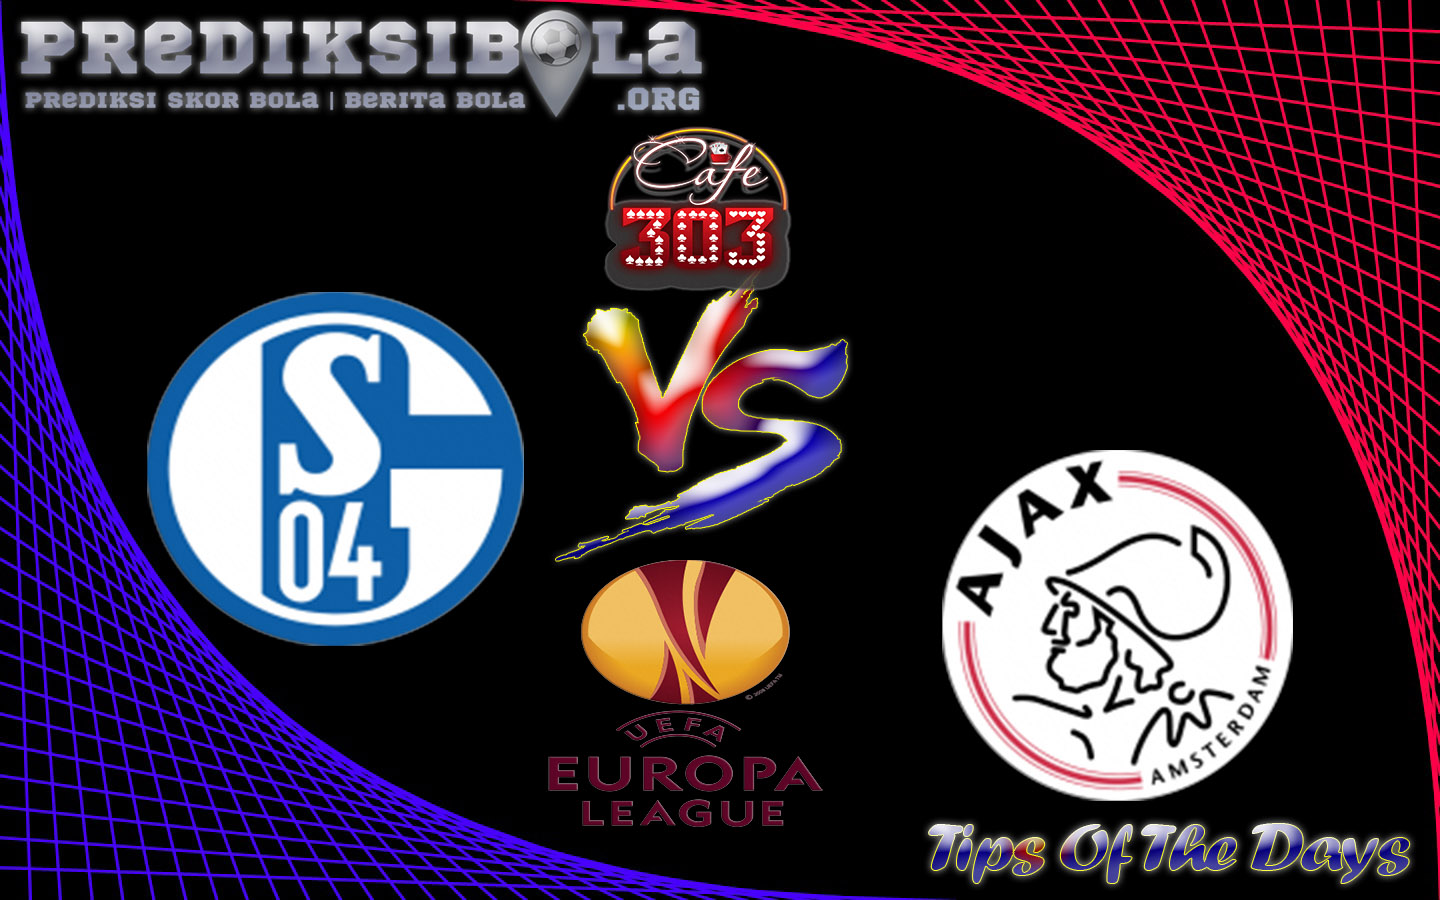 Prediksi Skor Schalke 04 Vs Ajax 21 April 2017